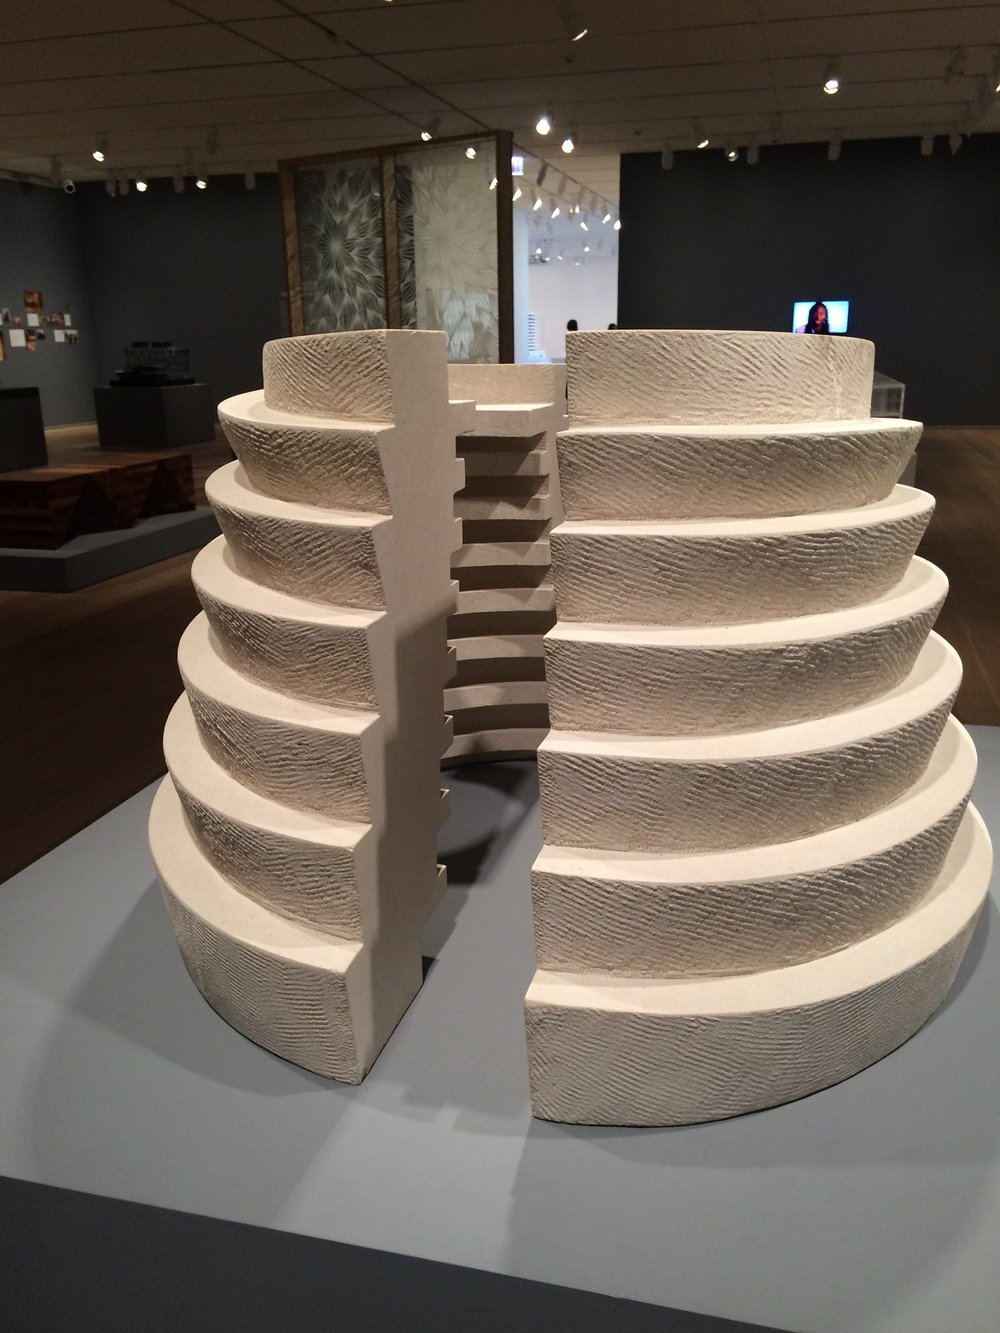 Dayka Robinson David Adjaye exhibit, Art Institute Chicago 12:2015